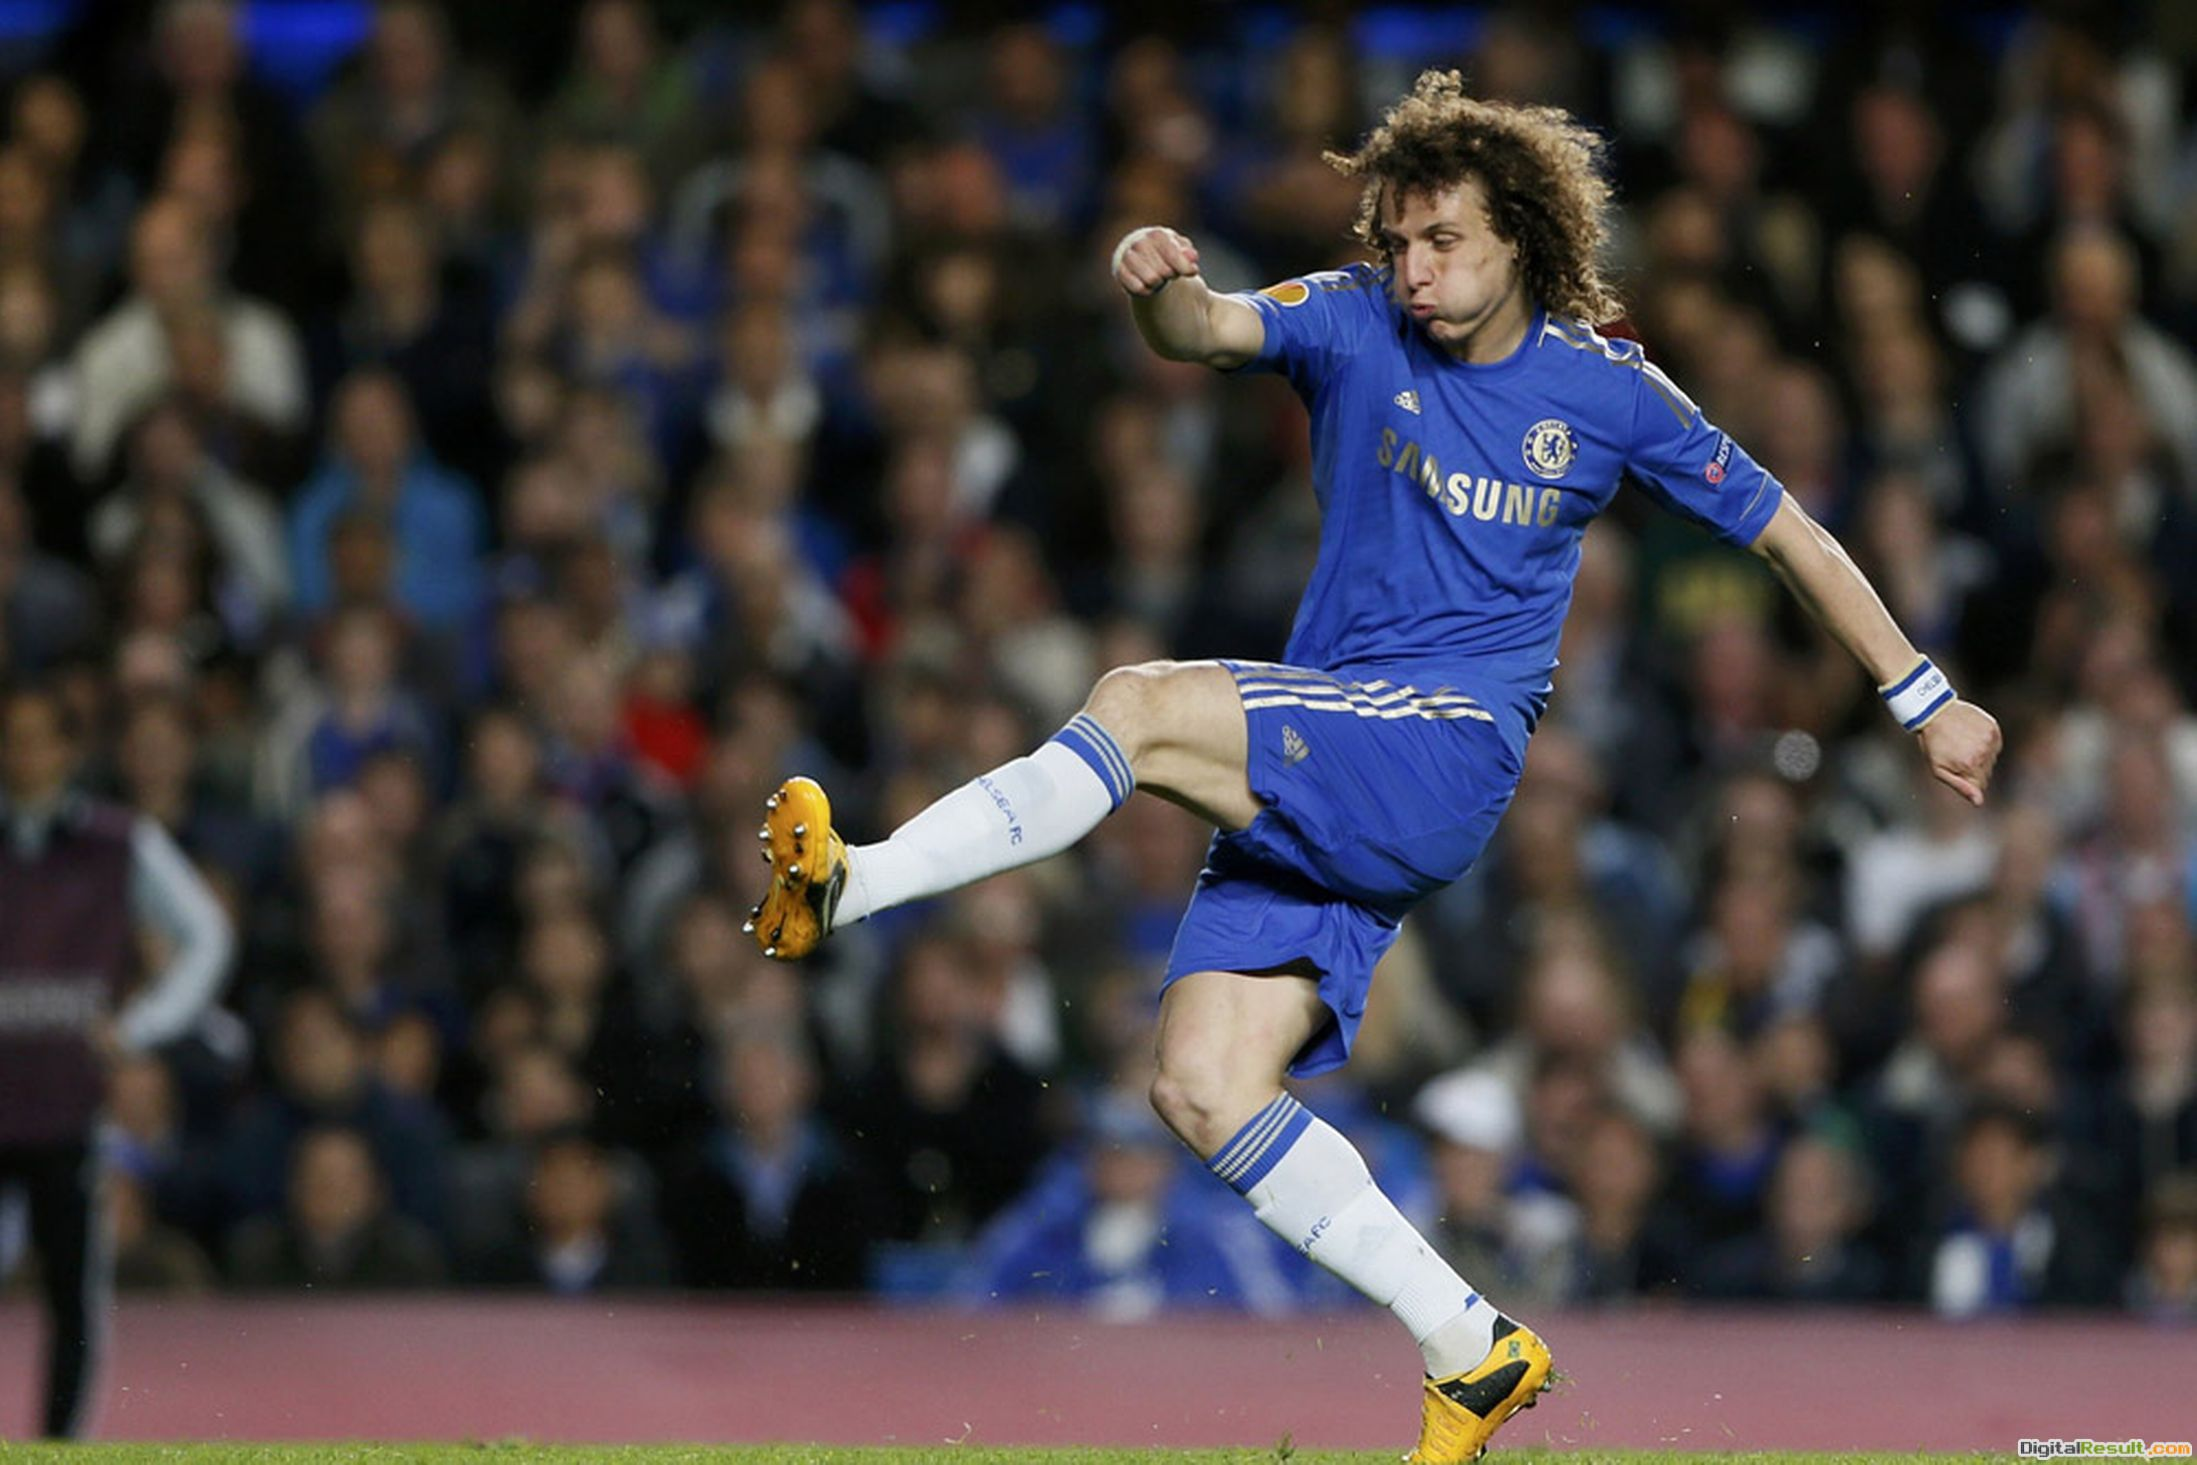 of Chelsea David Luiz superior shot wallpapers and imageswallpapers 1069